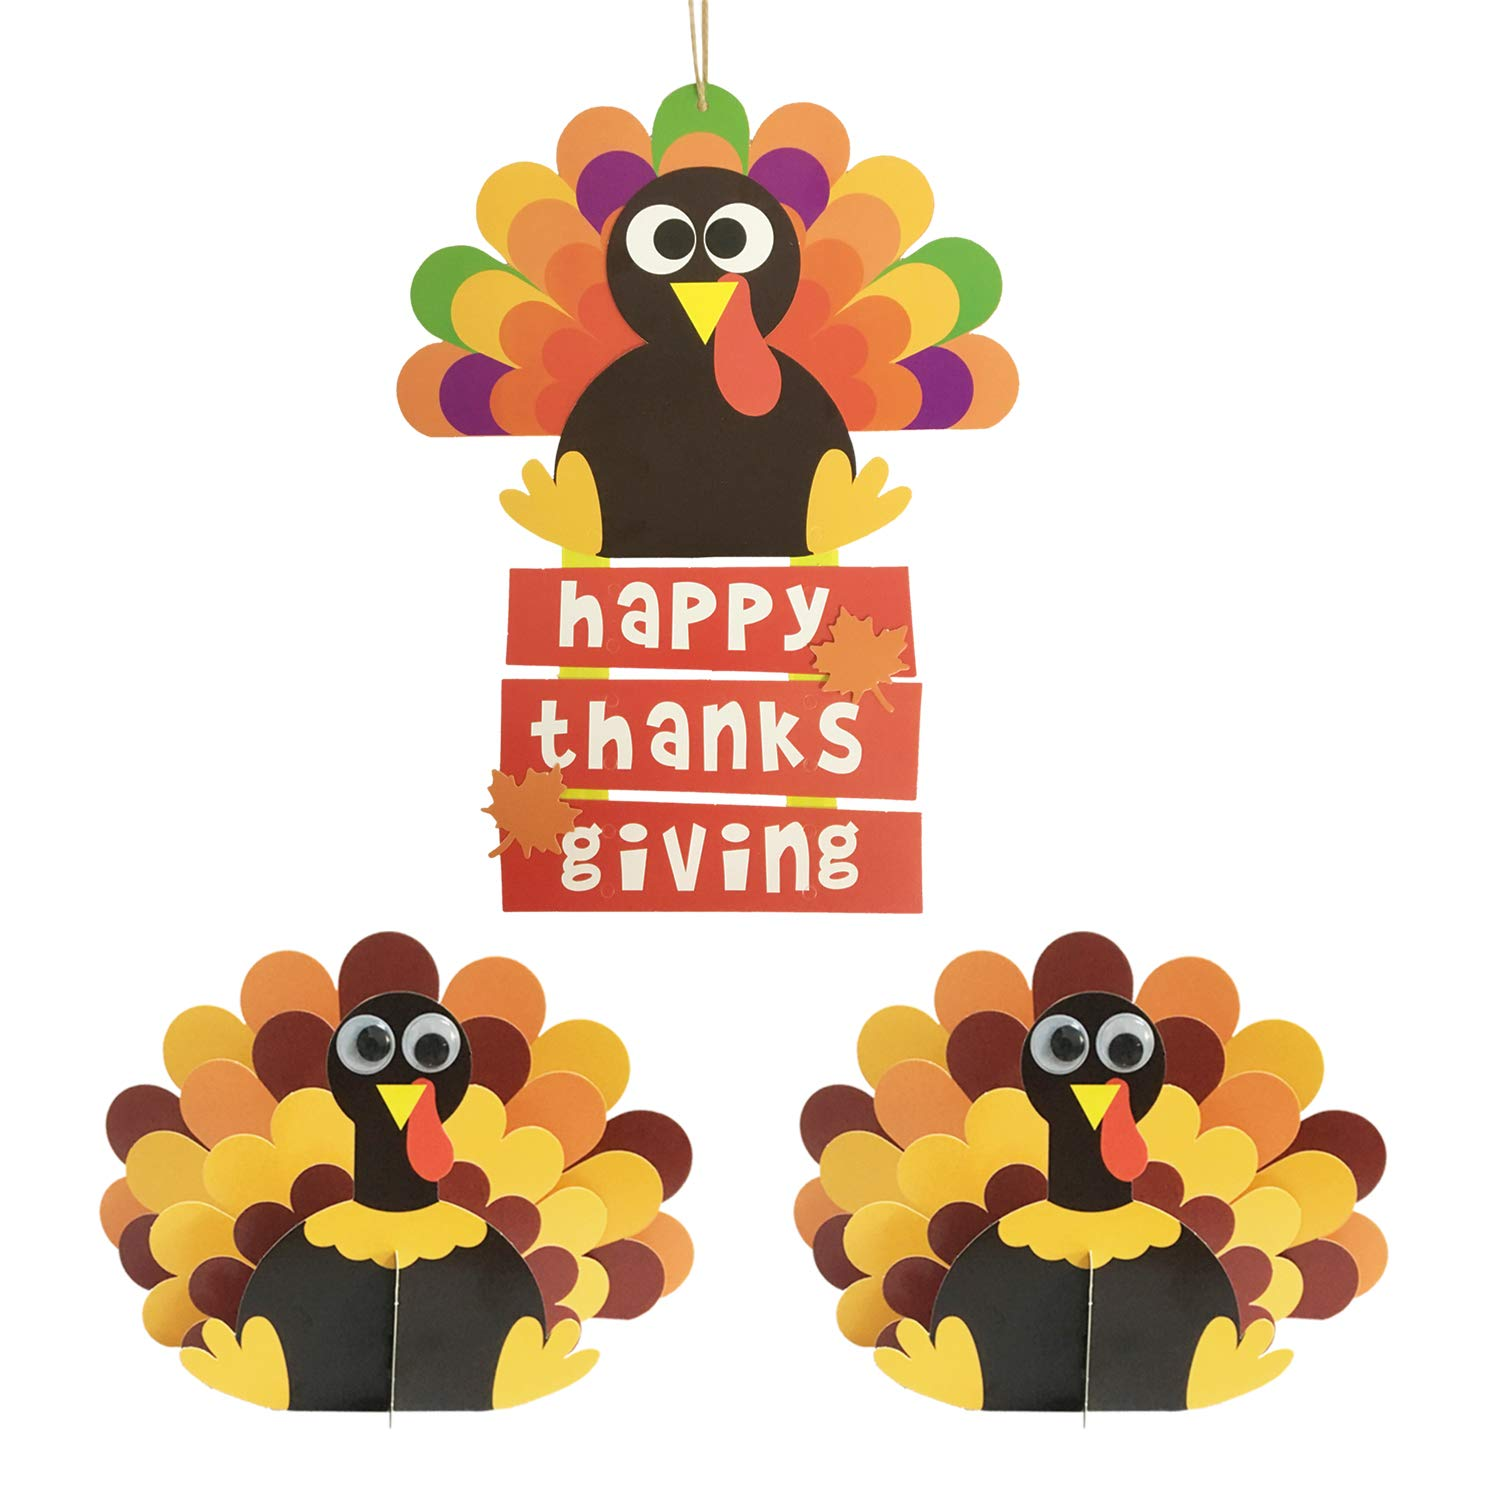 Turkey Crafts for Autumn Home Classroom Decorations Festive Fall Thanksgiving Party Turkey Craft Kit Thanksgiving Crafts for Kids DIY Happy Thanksgiving Sign /& 3D Turkey Decor Supplies